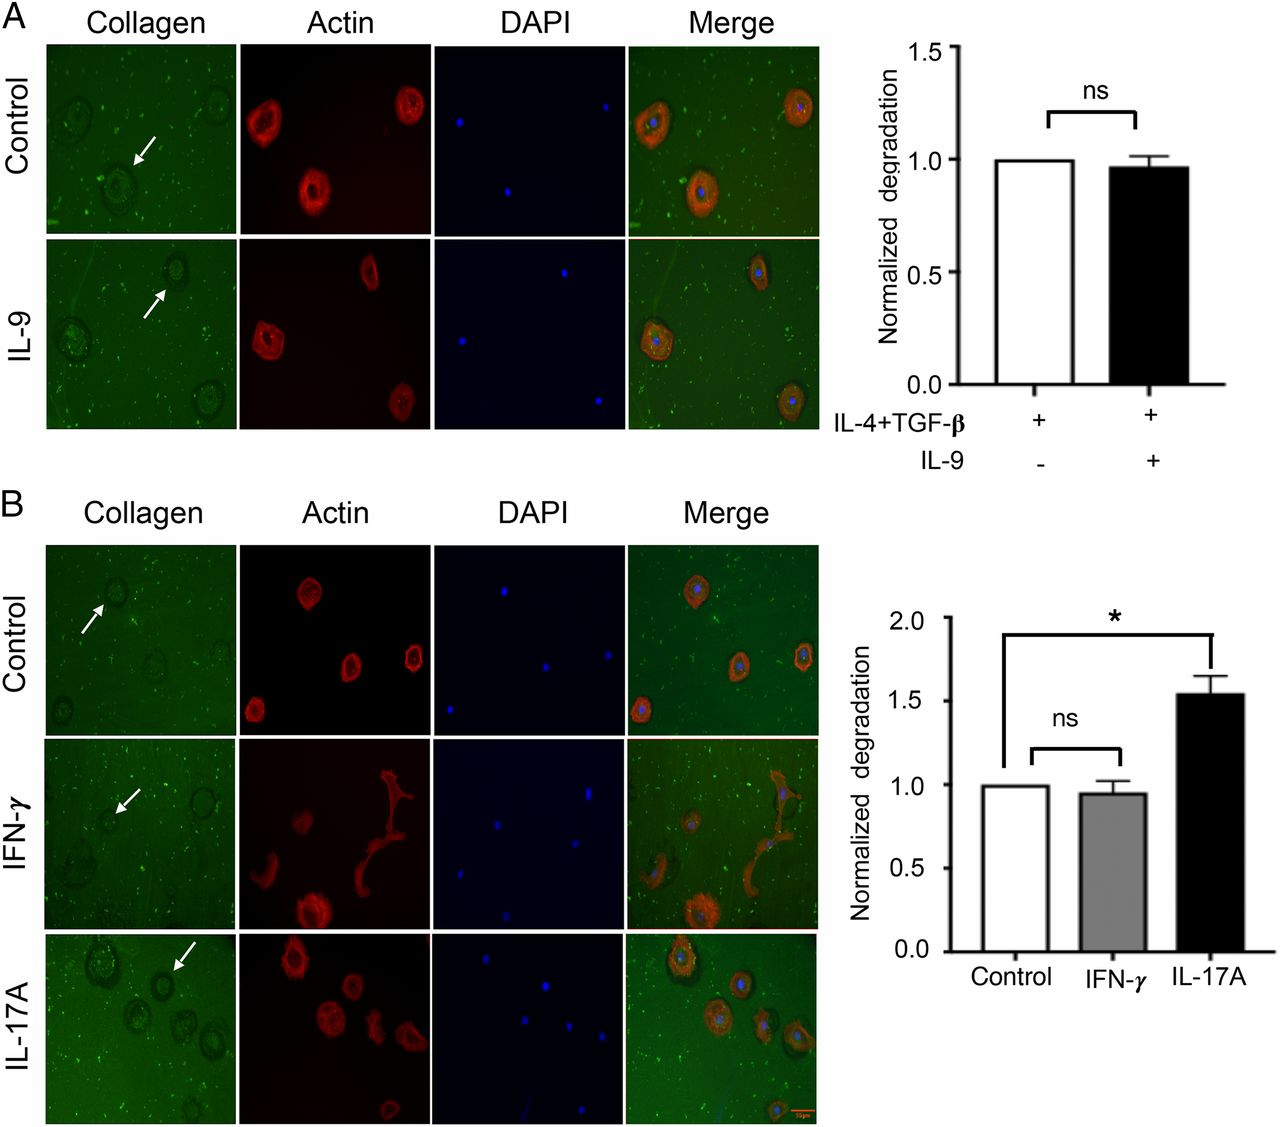 Differential Influence of IL-9 and IL-17 on Actin